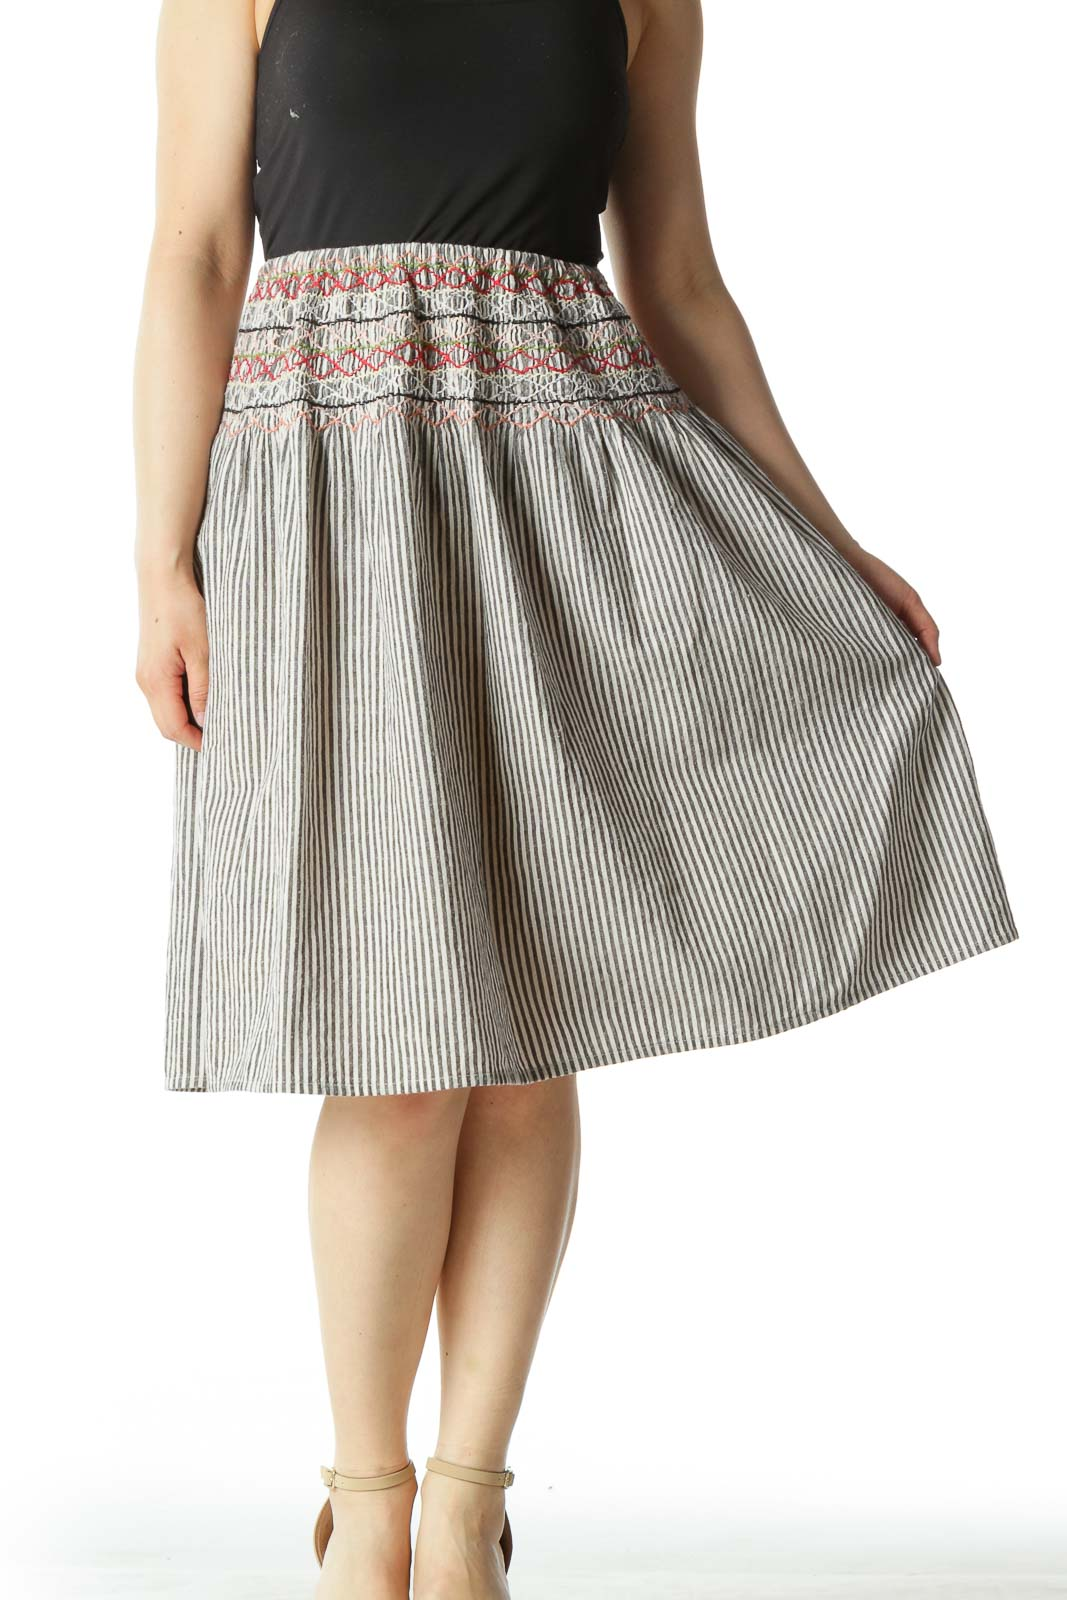 Black Striped A-Line Skirt with Multicolored Pattern